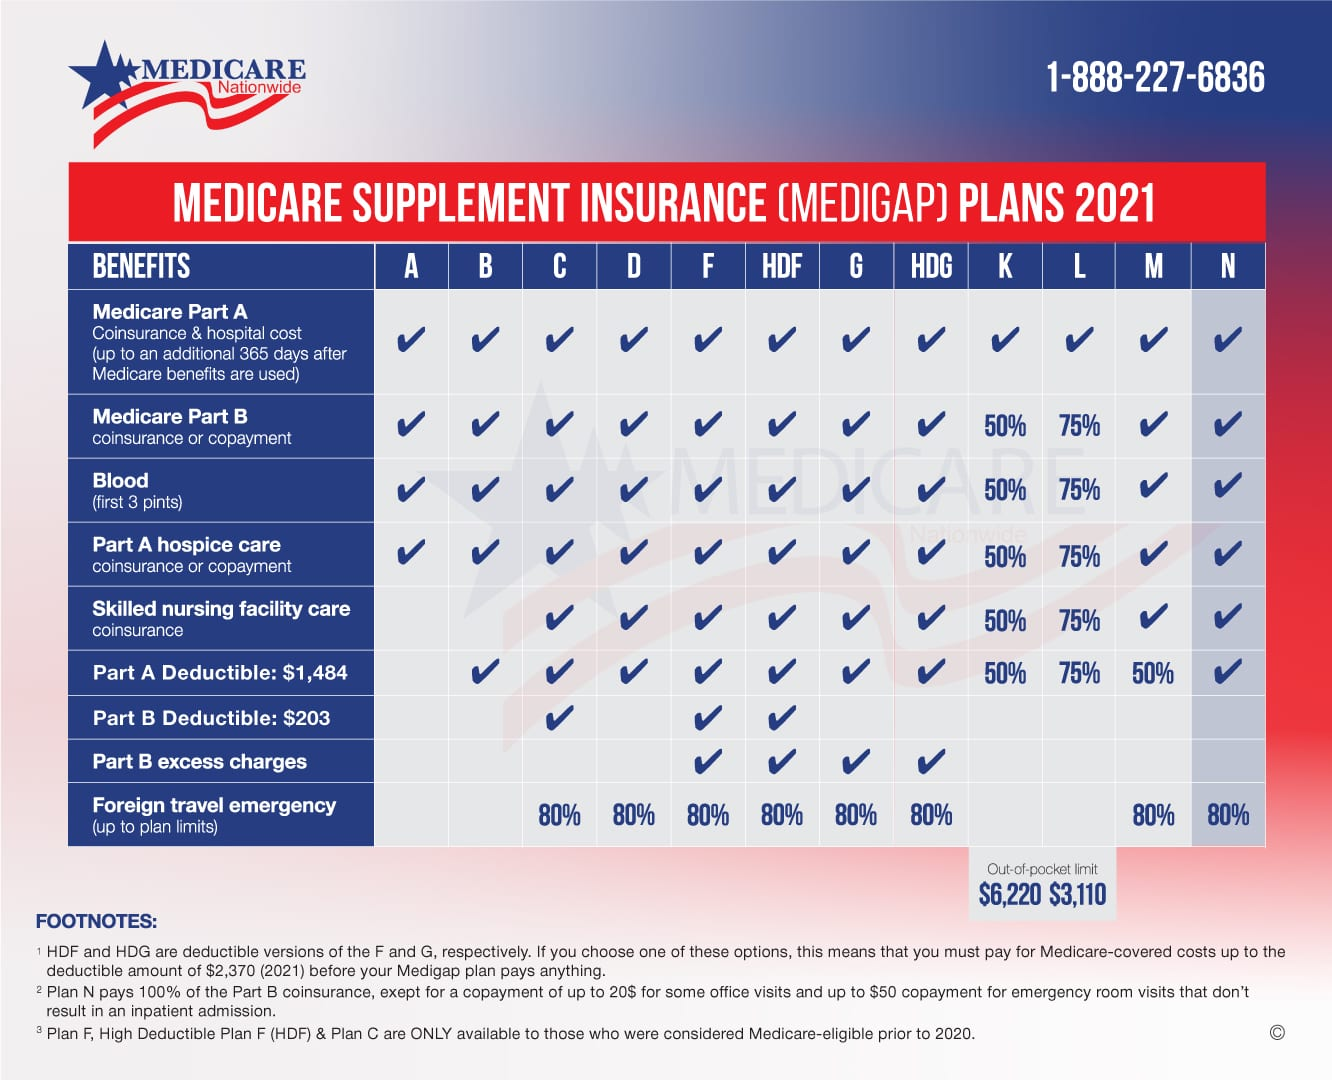 Medicare Supplement Chart 2021 - Plan N